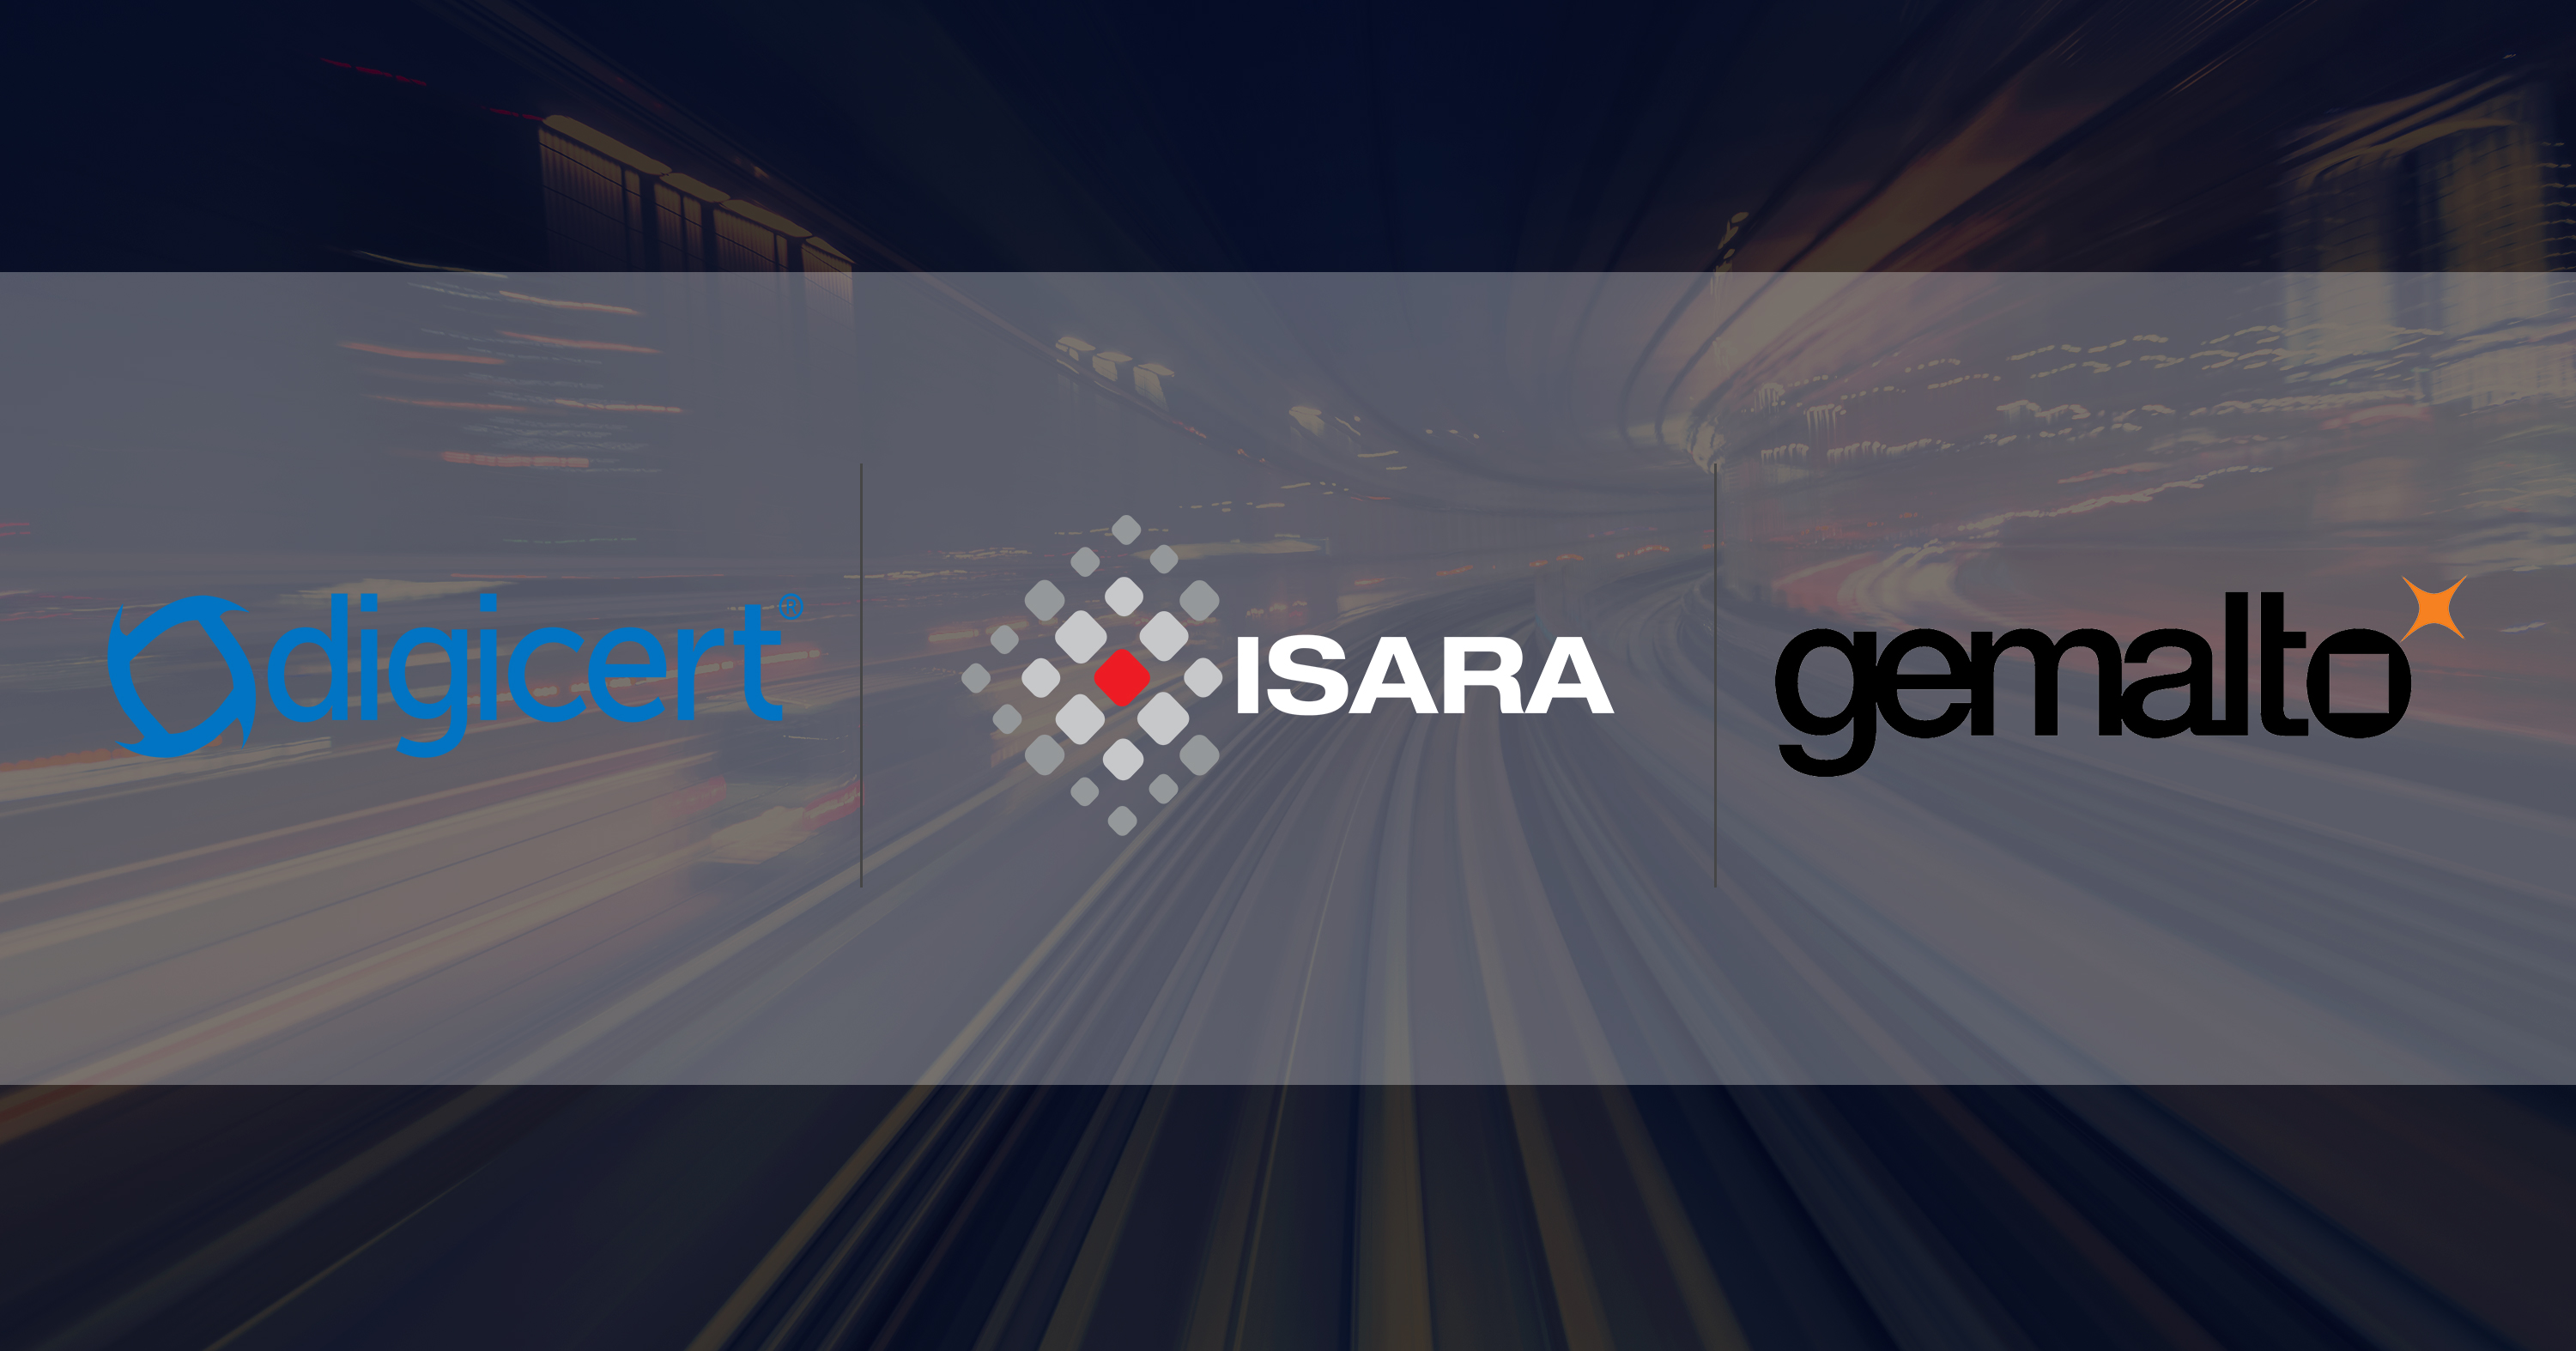 Safe Encryption Digicert Joins Forces With Gemalto Isara